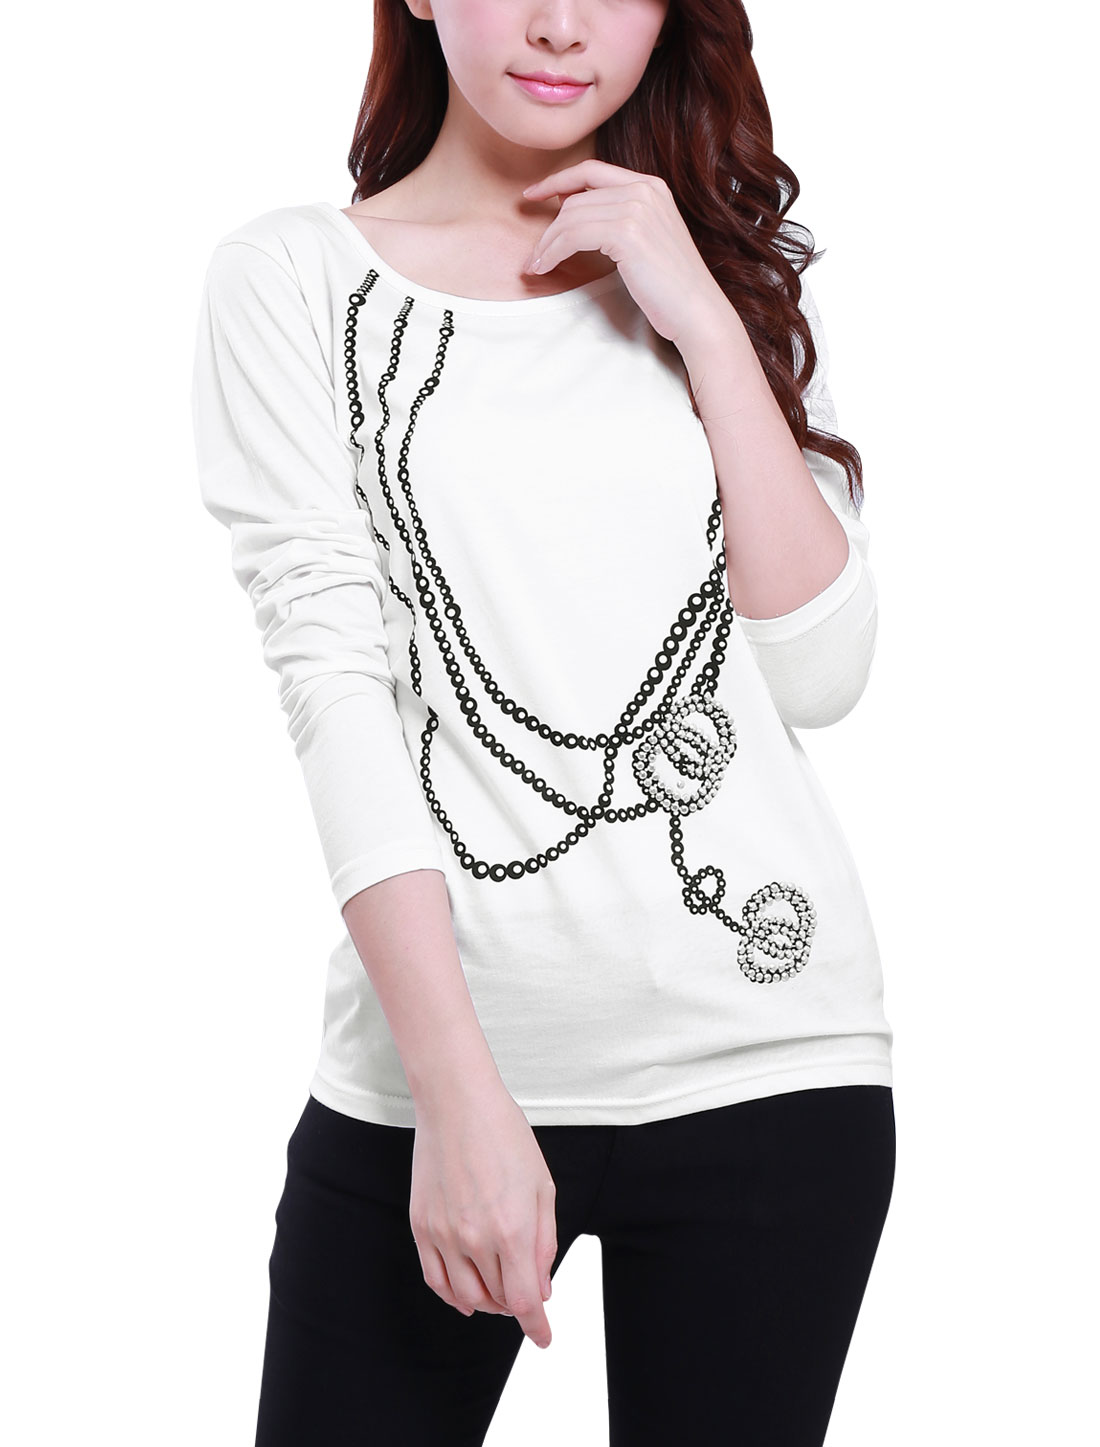 Necklace Prints White Scoop Neck Long Sleeve Shirt S for Women